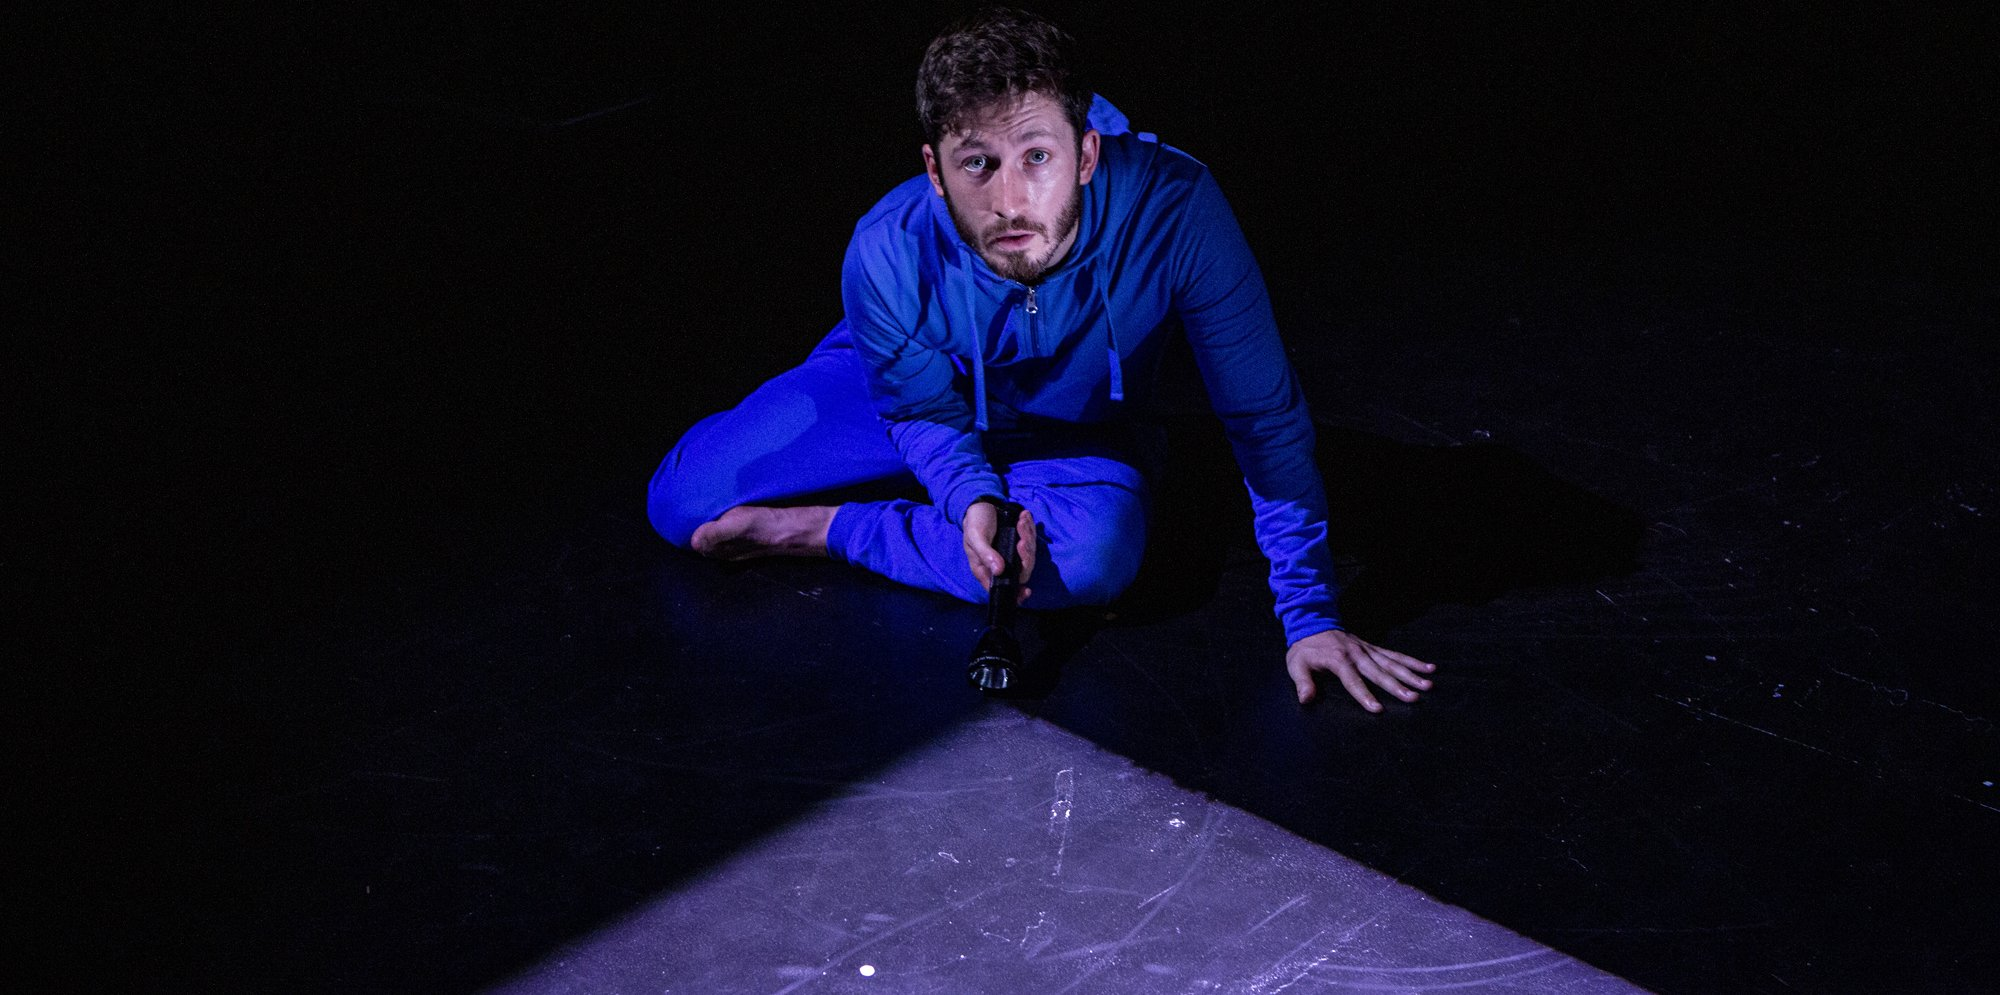 A man is on the ground in a blue onesie, holding a torch. The light from the torch is in front of him.